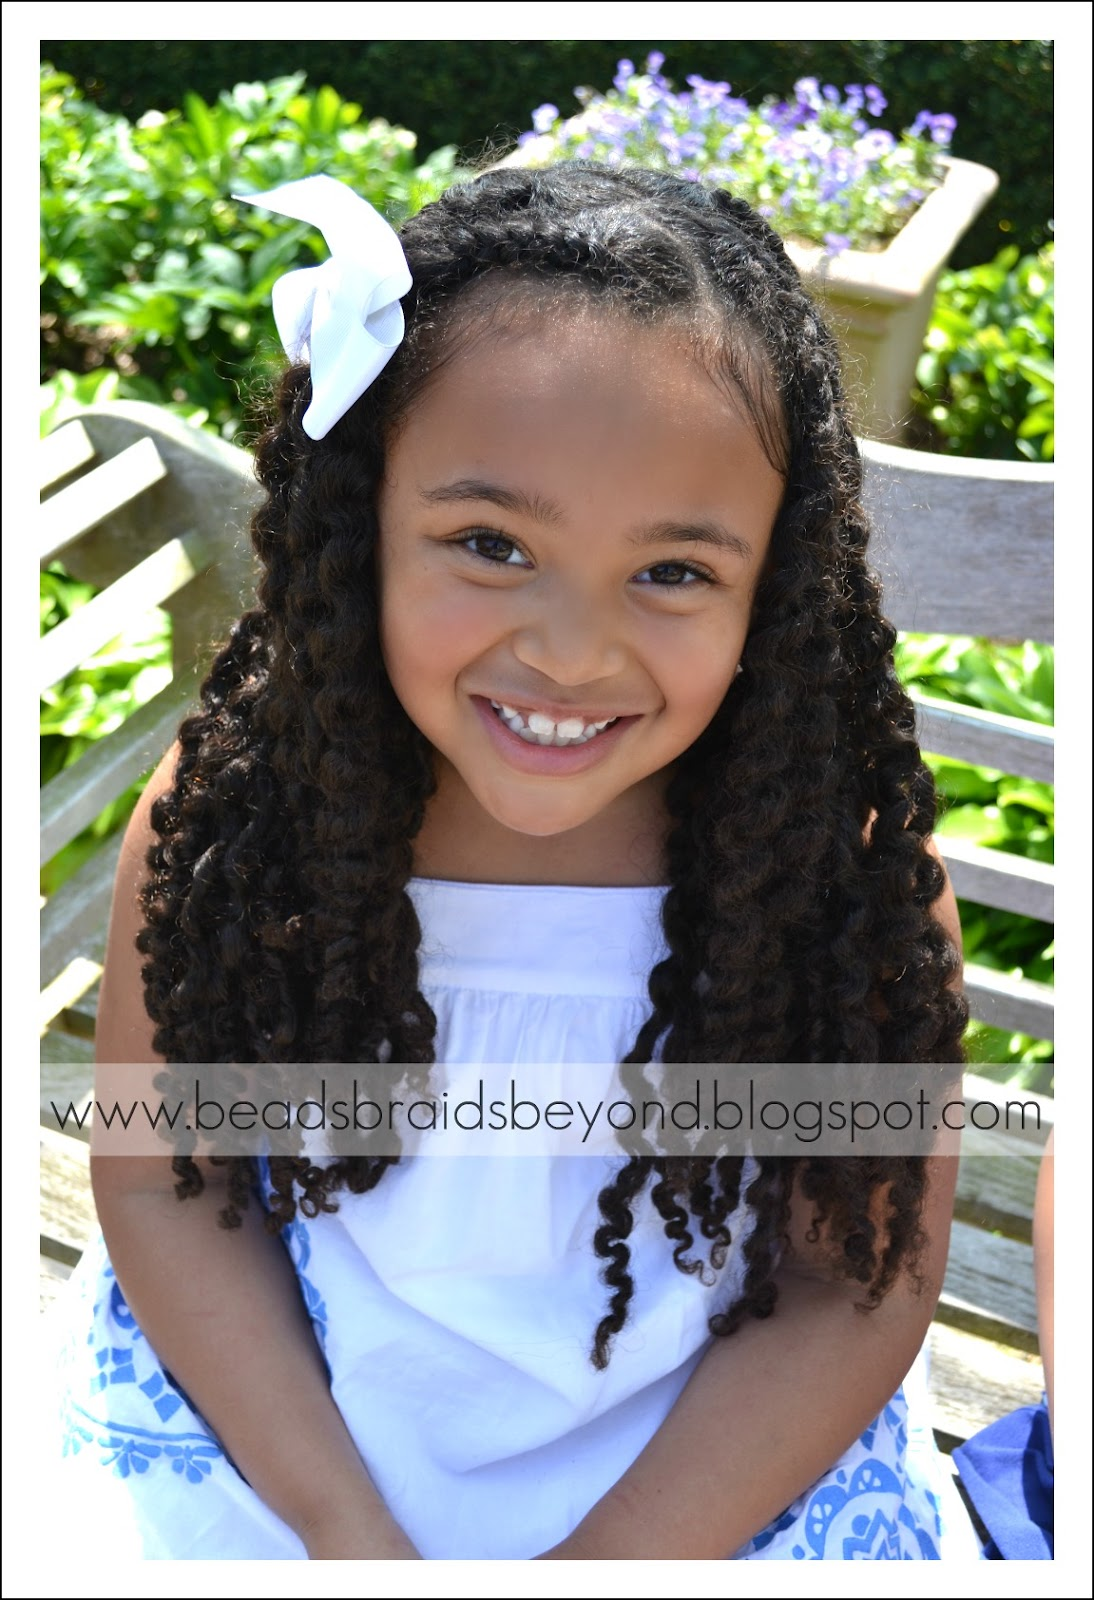 Wondrous Beads Braids And Beyond Little Girls Natural Hairstyles Twist Hairstyles For Women Draintrainus